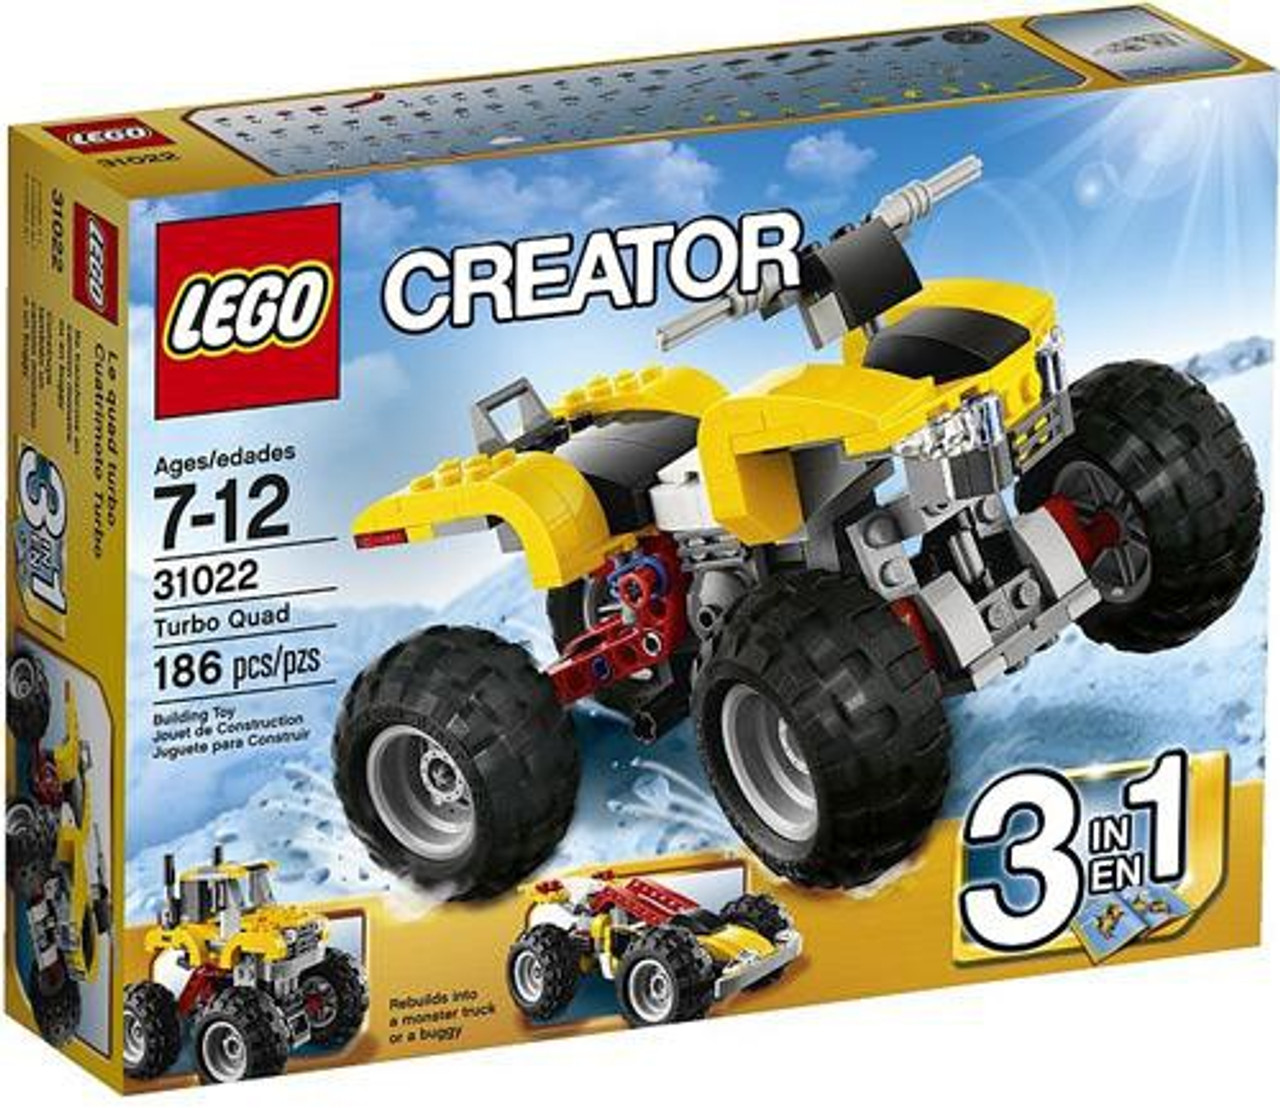 LEGO Creator Turbo Quad Set #31022